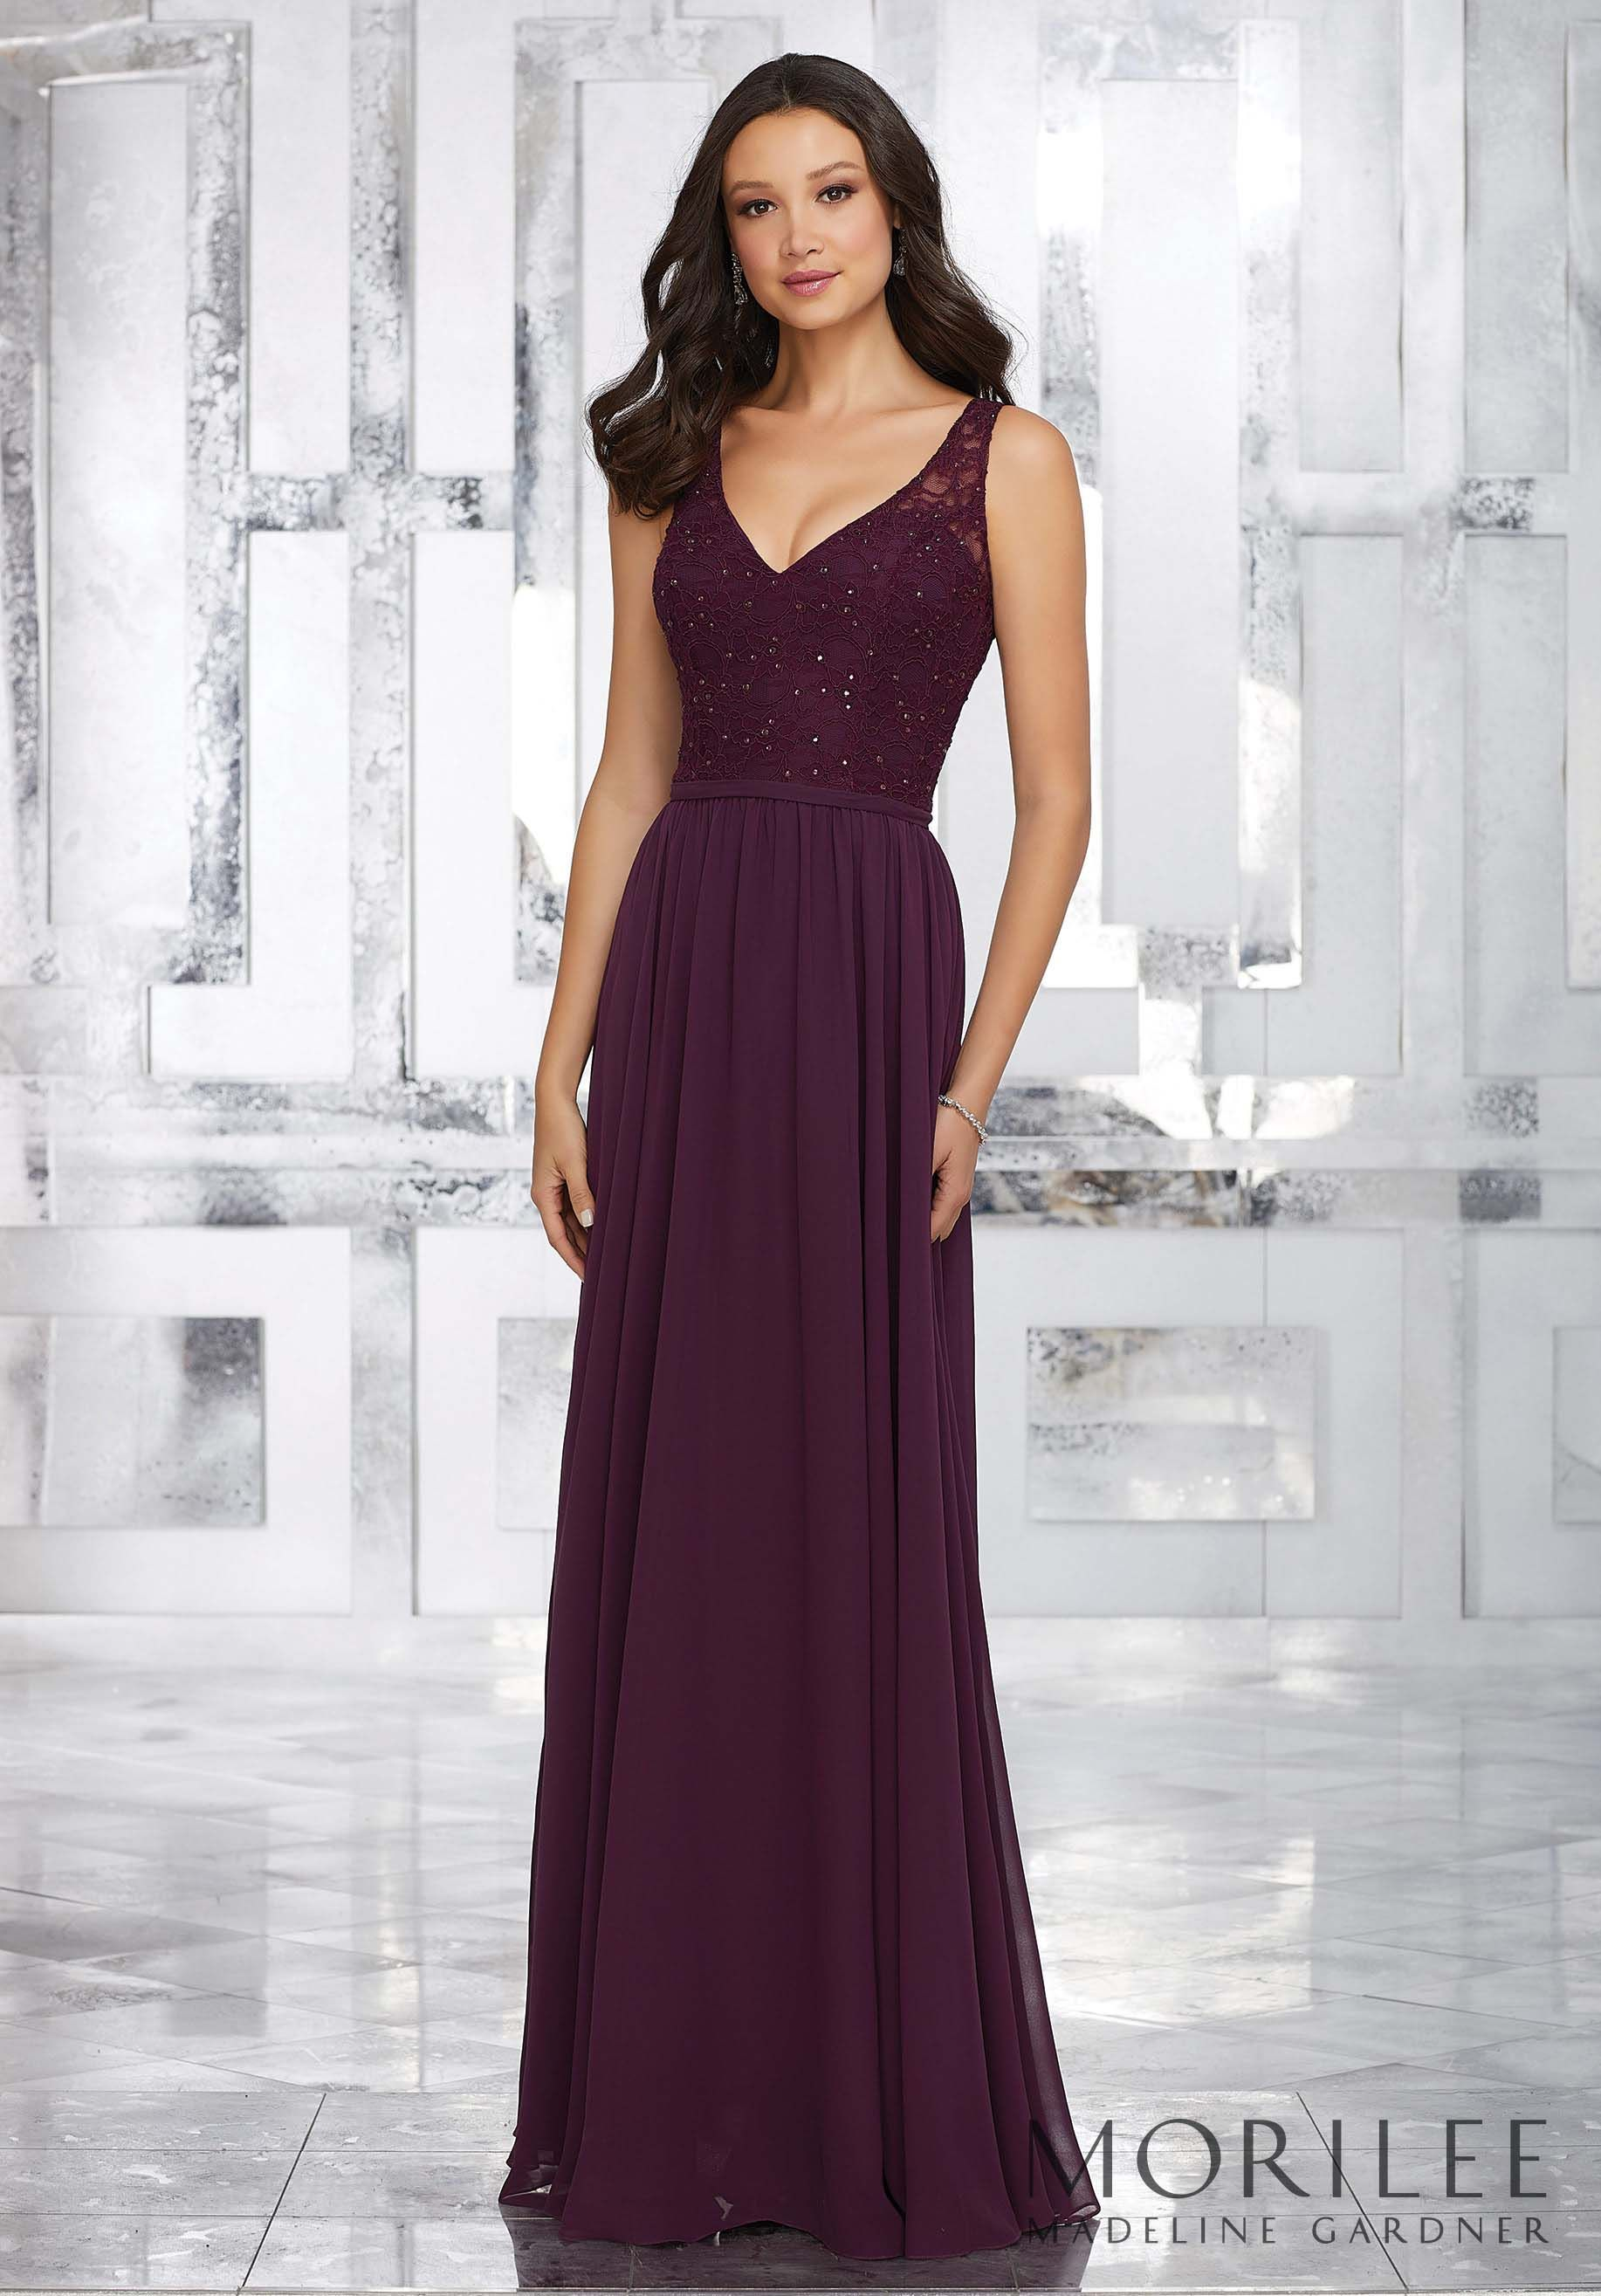 Morilee madeline gardner style 21546 chiffon a line long morilee madeline gardner style 21546 chiffon a line long bridesmaid dress with ombrellifo Choice Image